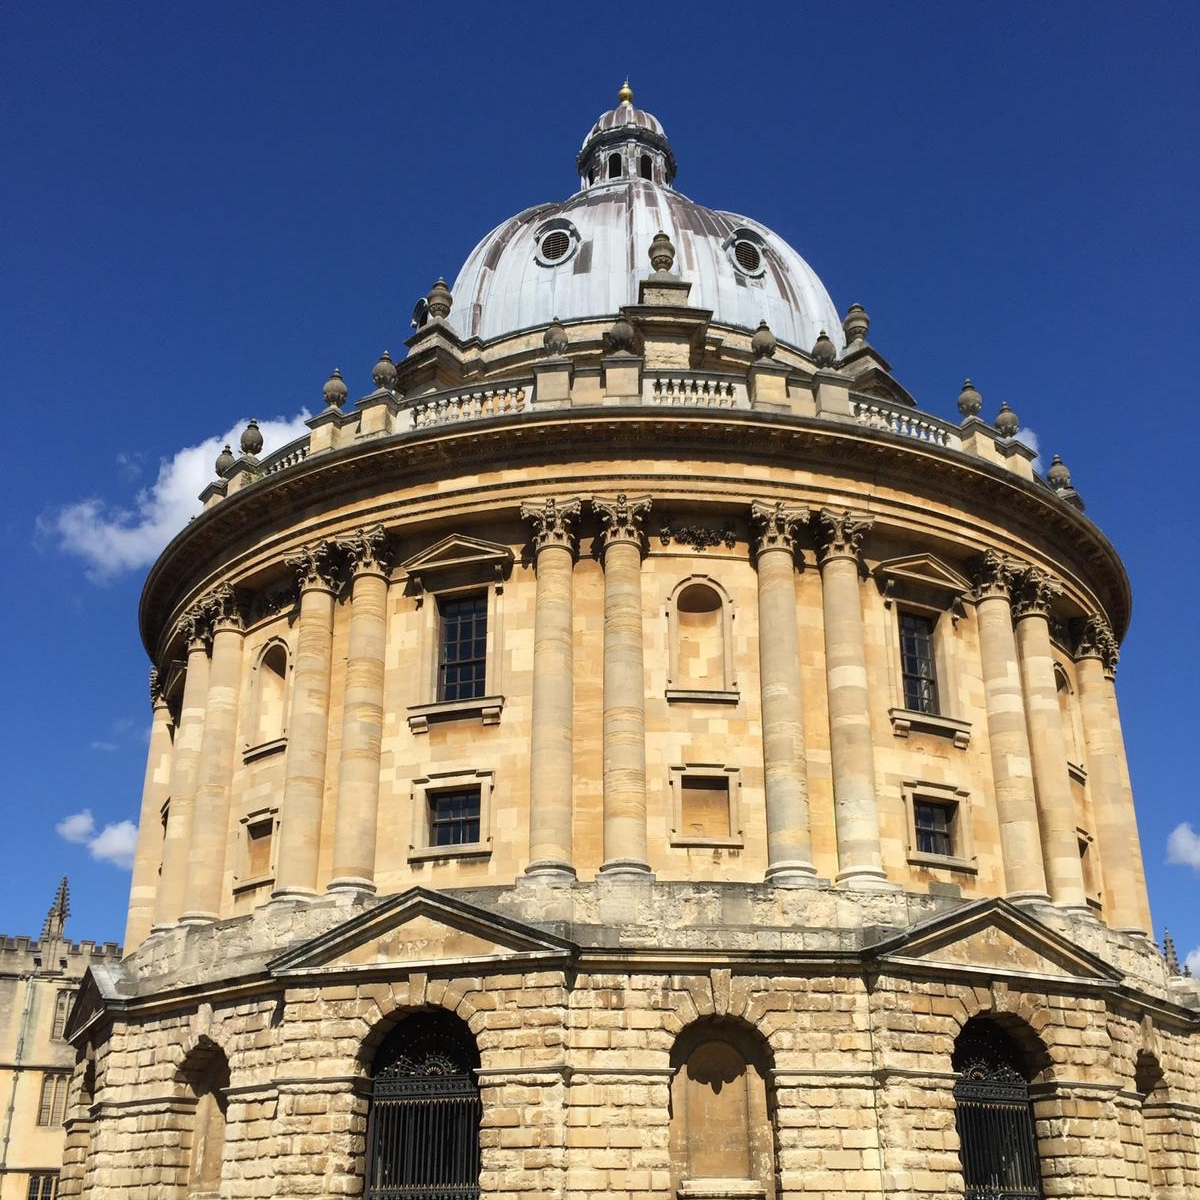 our 3 favourite things to do in oxfordshire: - 1. Drinks with friends - You can read more about the inspiration behind our Oxfordshire products below, but it all stems from great cafes and bars in the city of Oxford, all with excellent views of the beautiful 'Dreaming Spires'. Our personal favourite has to be The Grand Cafe - said to be the first coffee house in England, and situated right in the heart of Oxford, it is a perfect example of opulence, with cream teas to die for!2. A spot of shopping - Now we're not the biggest buyer of designer clothes but who doesn't love a bargain?! Bicester Village is home to some of our favourites (Kate Spade, Lacoste and Emma Bridgewater to name a few), all at outlet prices! It gets crazy busy on the weekends though so we try and get there super early, or I like to pop there after work for some late night shopping in peace.3. Exploring The Cotswolds - Definitely worth a blog post all to itself, but absolutely one of our favourite things to do in Oxfordshire! Easily one of our favourite places in the UK, we love nothing more than exploring the Cotswold Hills and finding beautiful little pubs to spend the day in (after all, that's the best bit of a long walk right?).